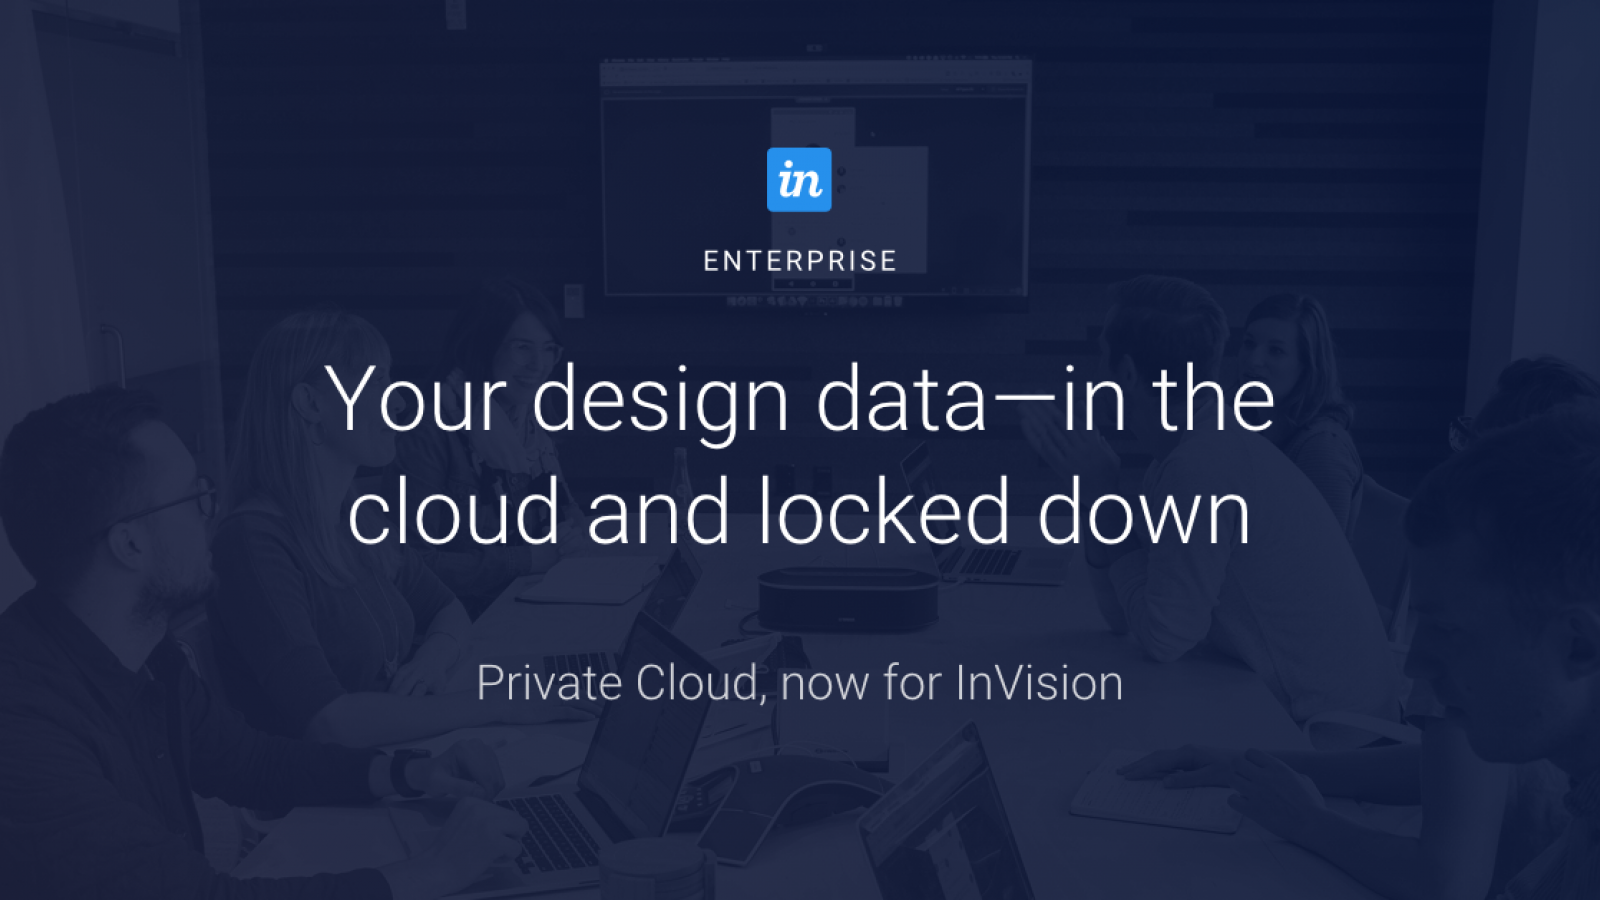 InVision: Introducing Private Cloud